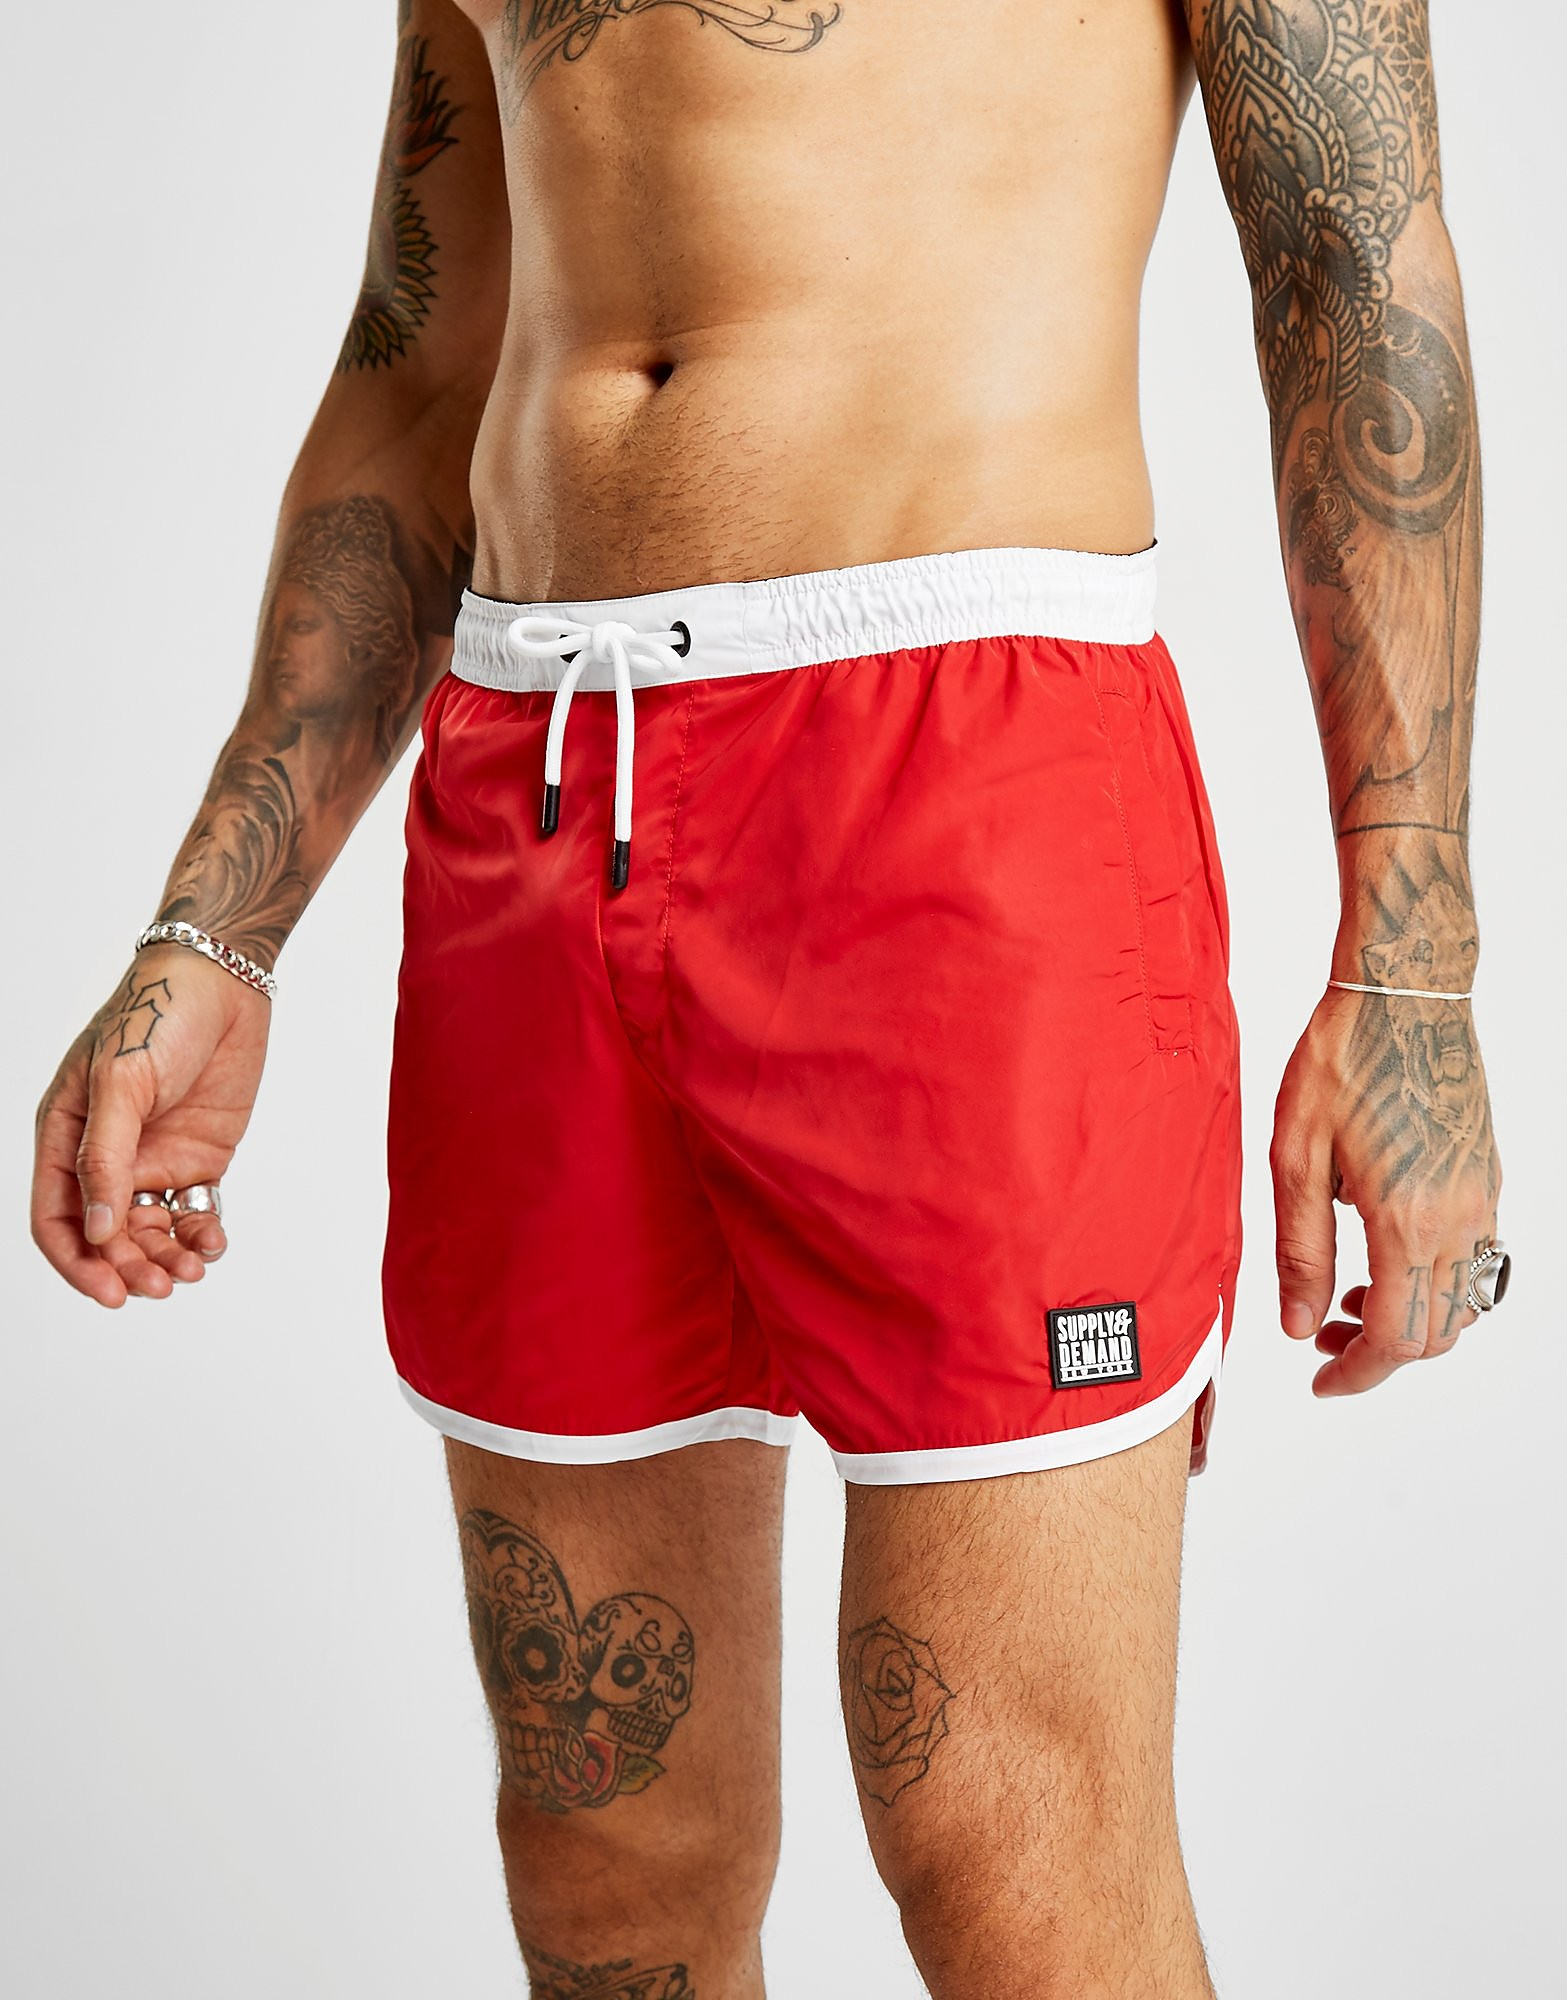 Supply & Demand Track Swim Shorts - Only at JD, Red